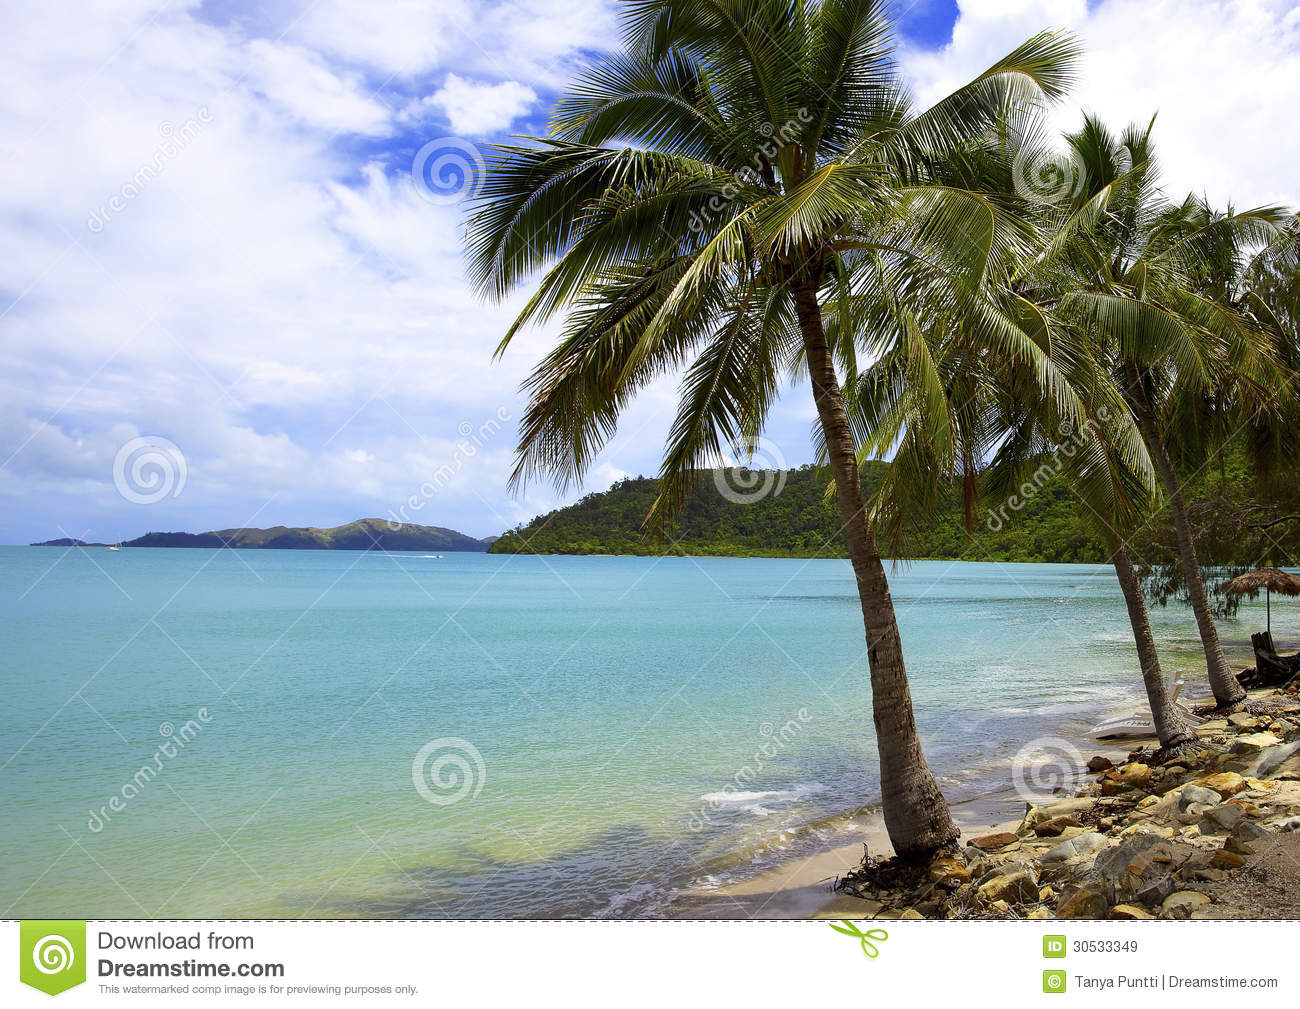 Coconut Island Queensland: Tropical Island With Coconut Trees